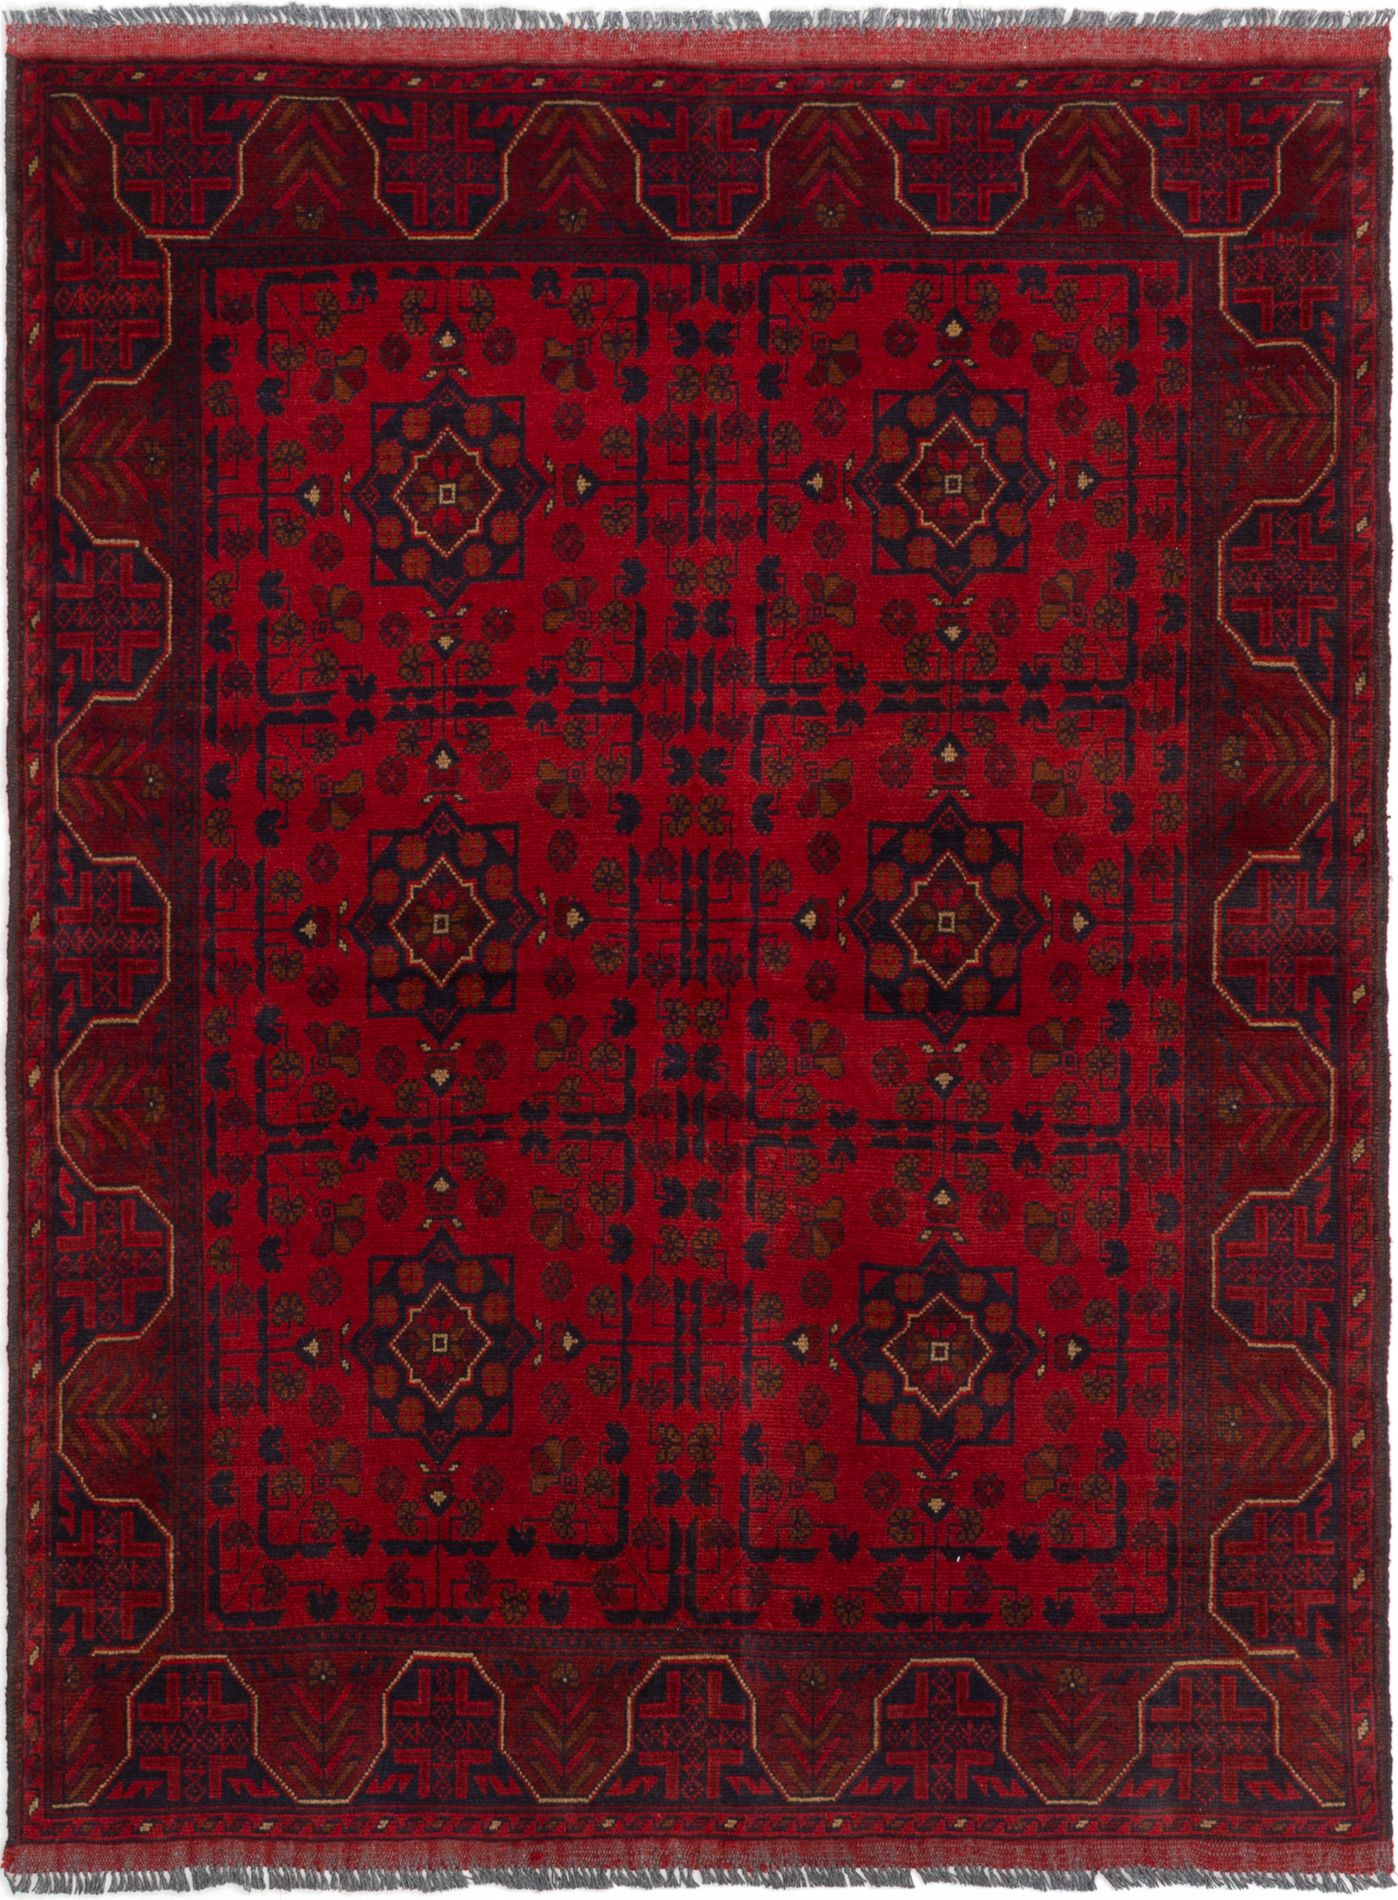 """Hand-knotted Finest Khal Mohammadi Red Wool Rug 4'11"""" x 6'5""""  Size: 4'11"""" x 6'5"""""""